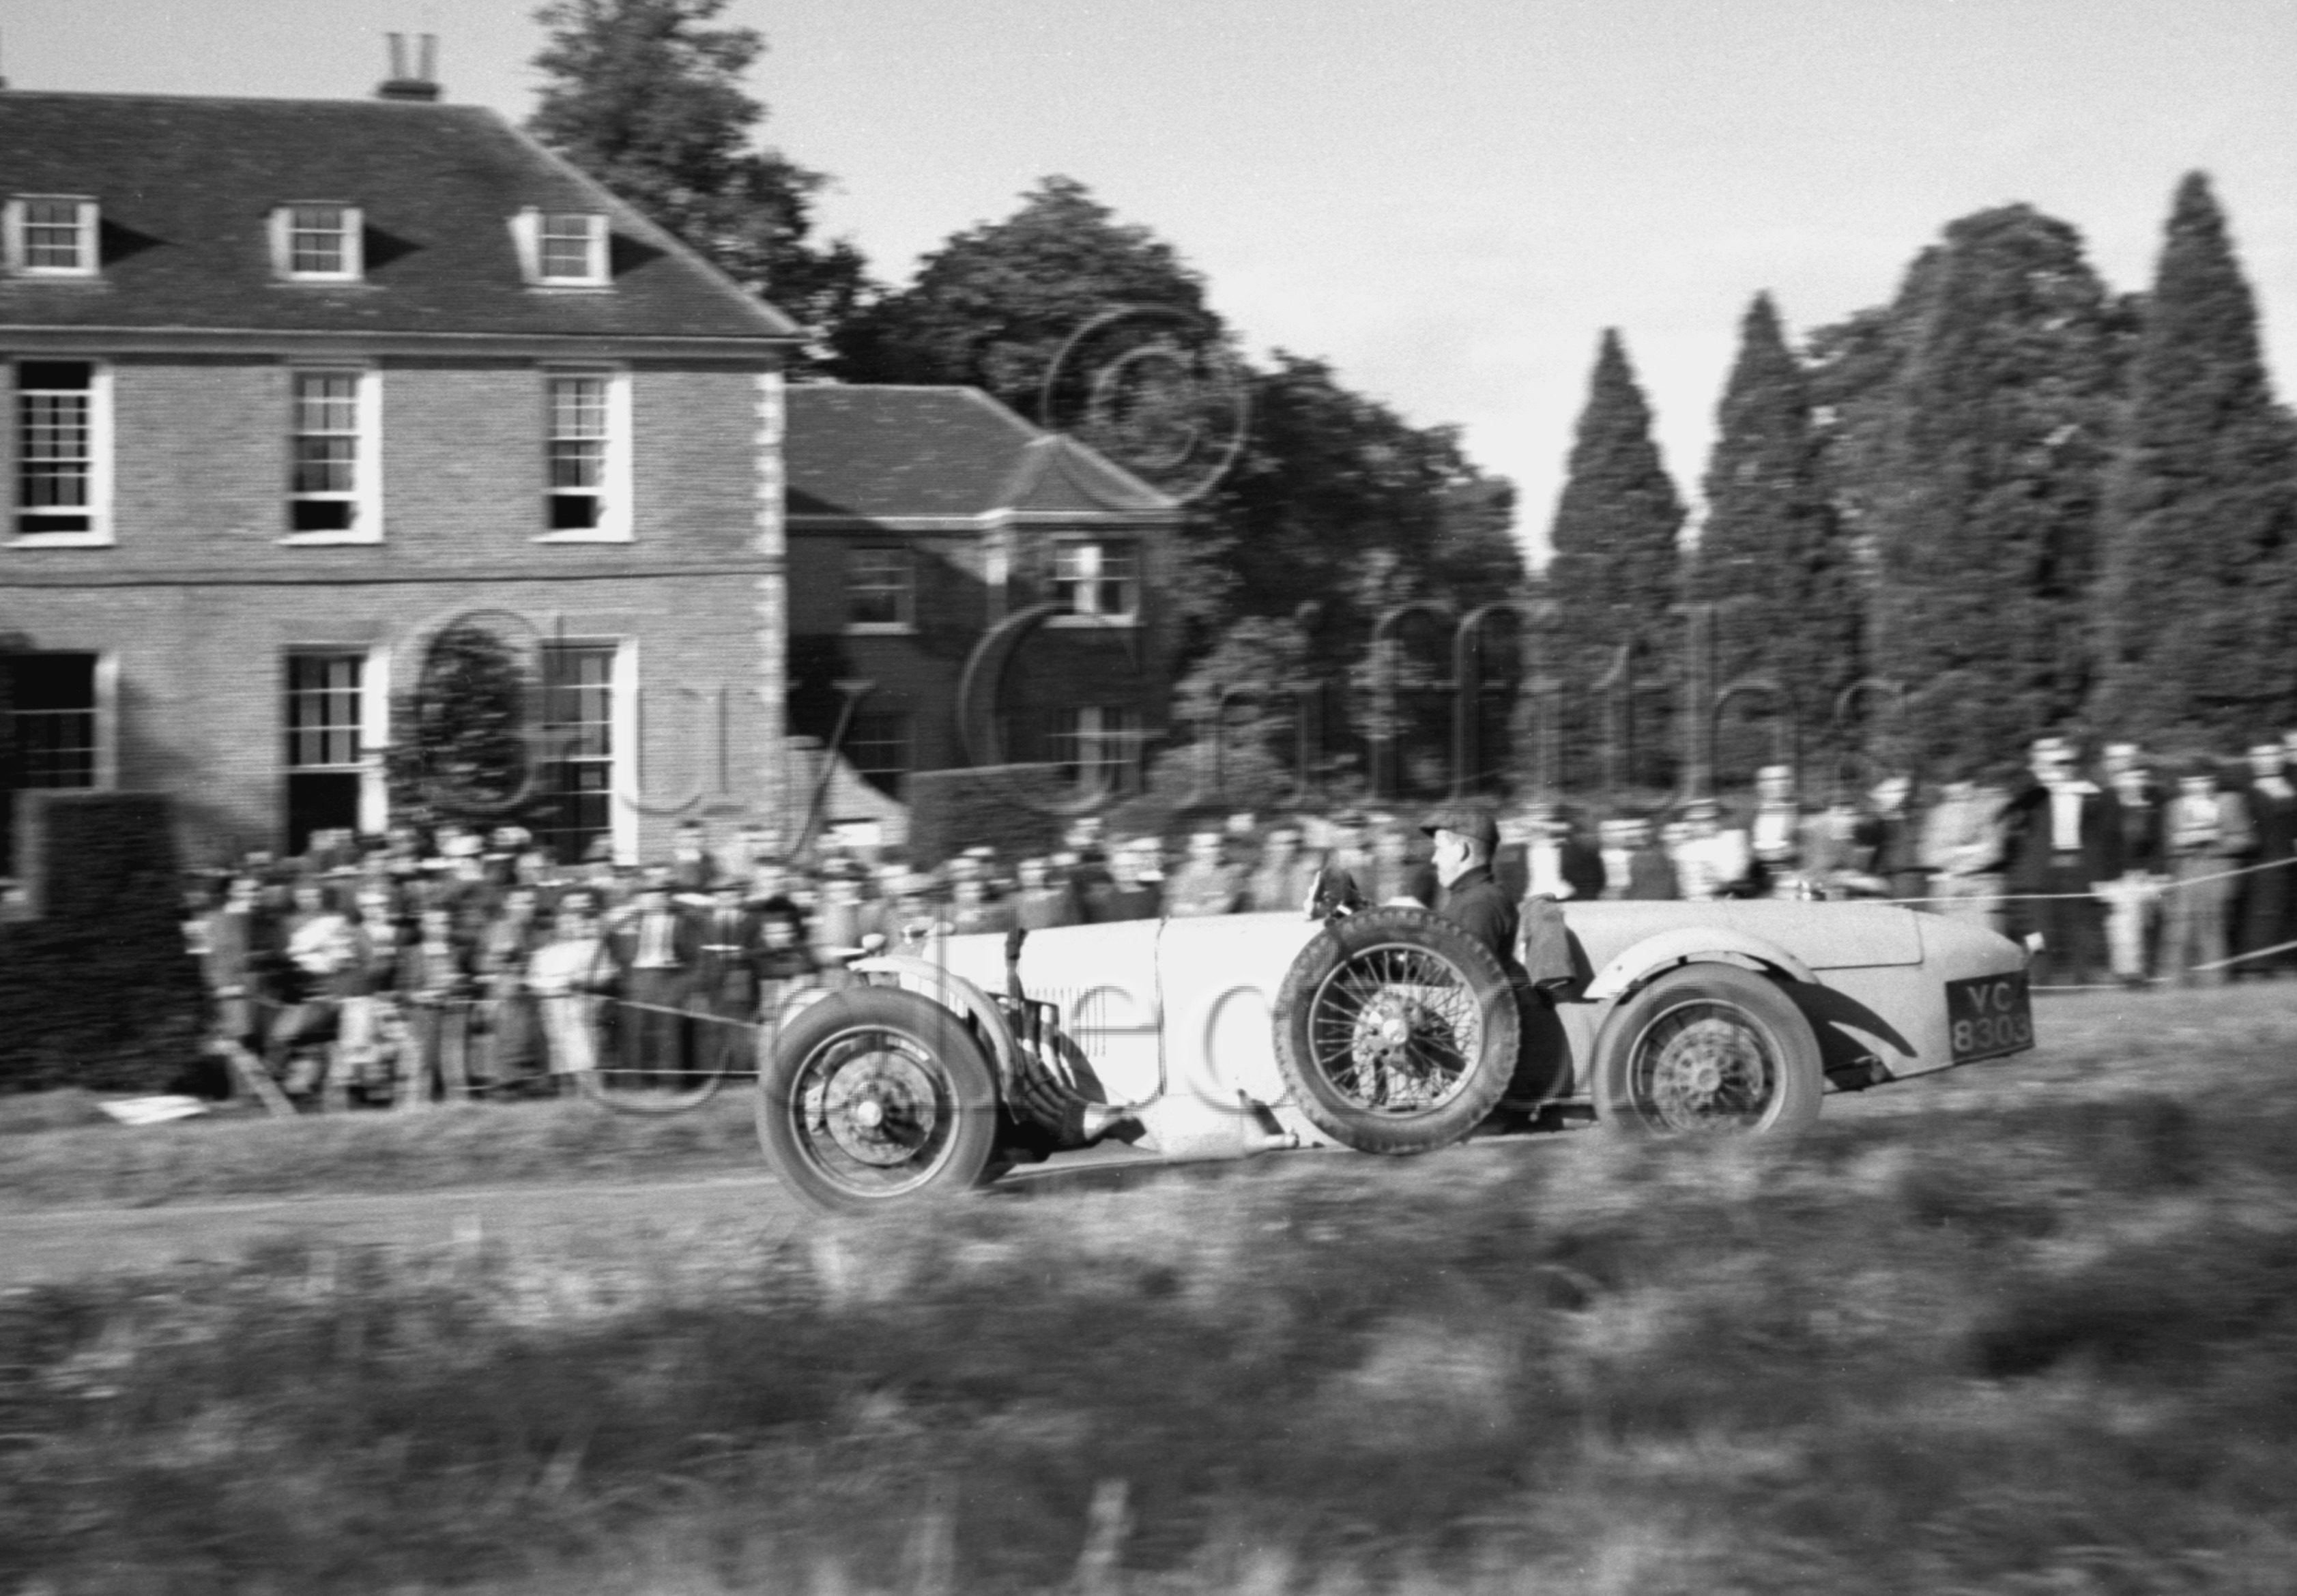 02-495–R-Way–Riley–West-Court–15-09-1946.jpg - The Guy Griffiths Collection